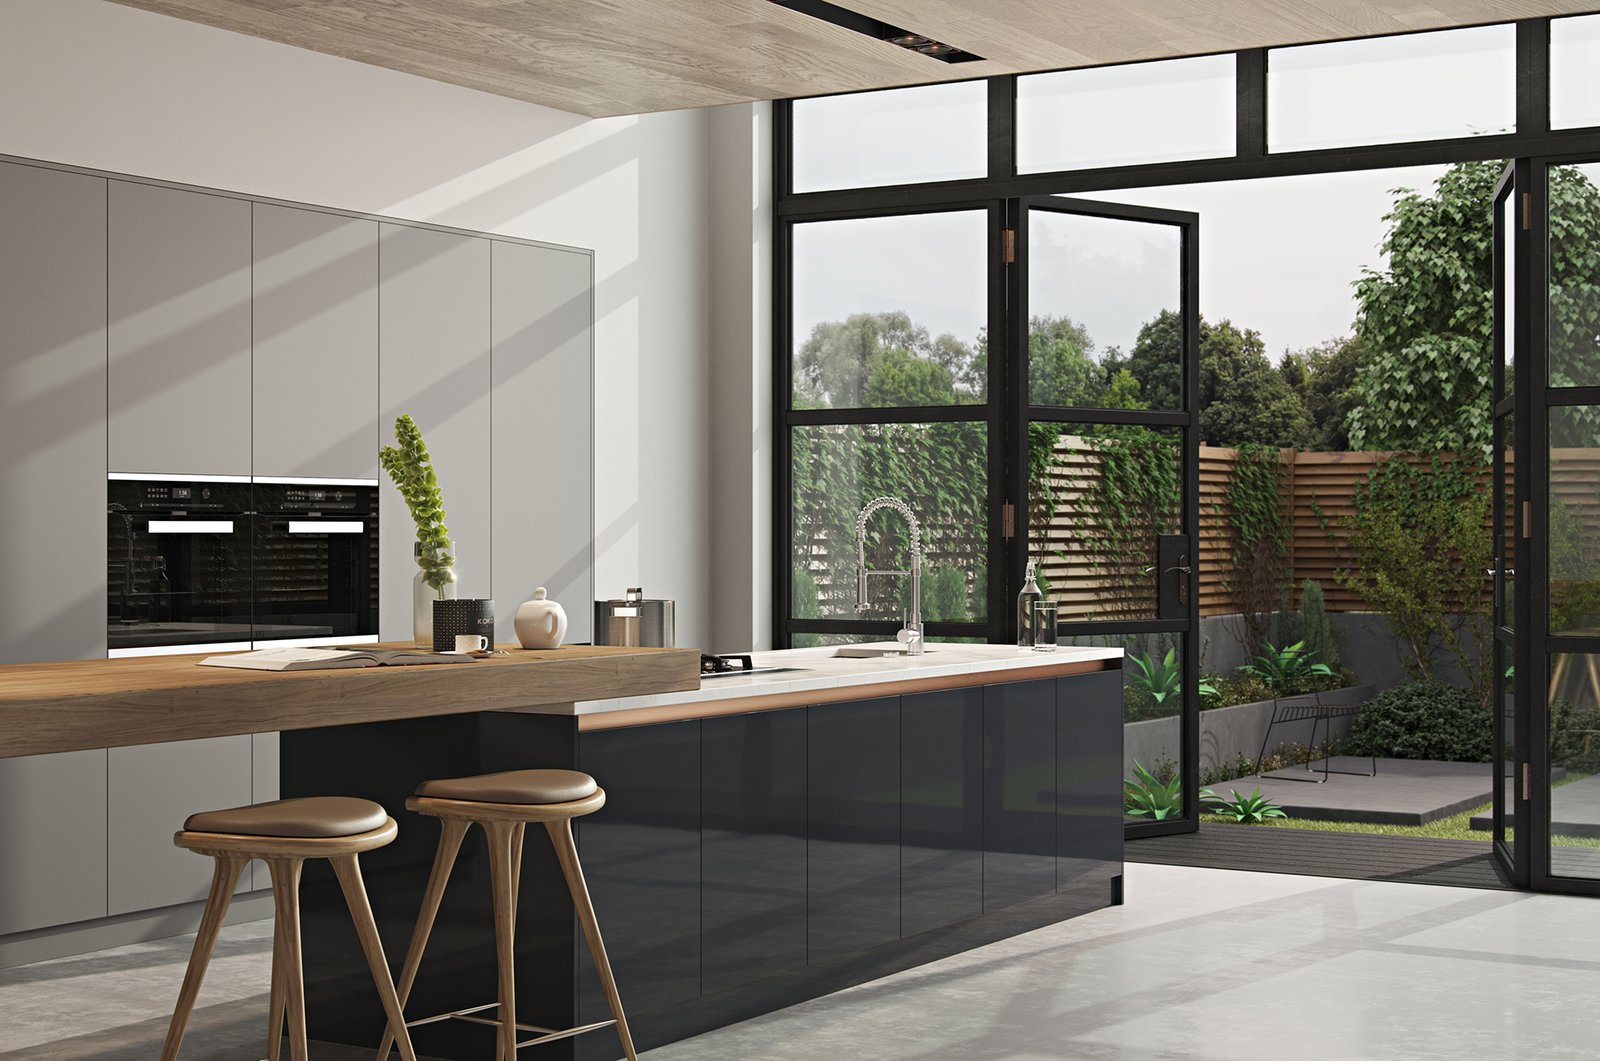 Tagged: Kitchen, Marble Counter, Wood Cabinet, Laminate Cabinet, Recessed Lighting, Wall Oven, Concrete Floor, Undermount Sink, and Cooktops.   from Kitchen//Extension